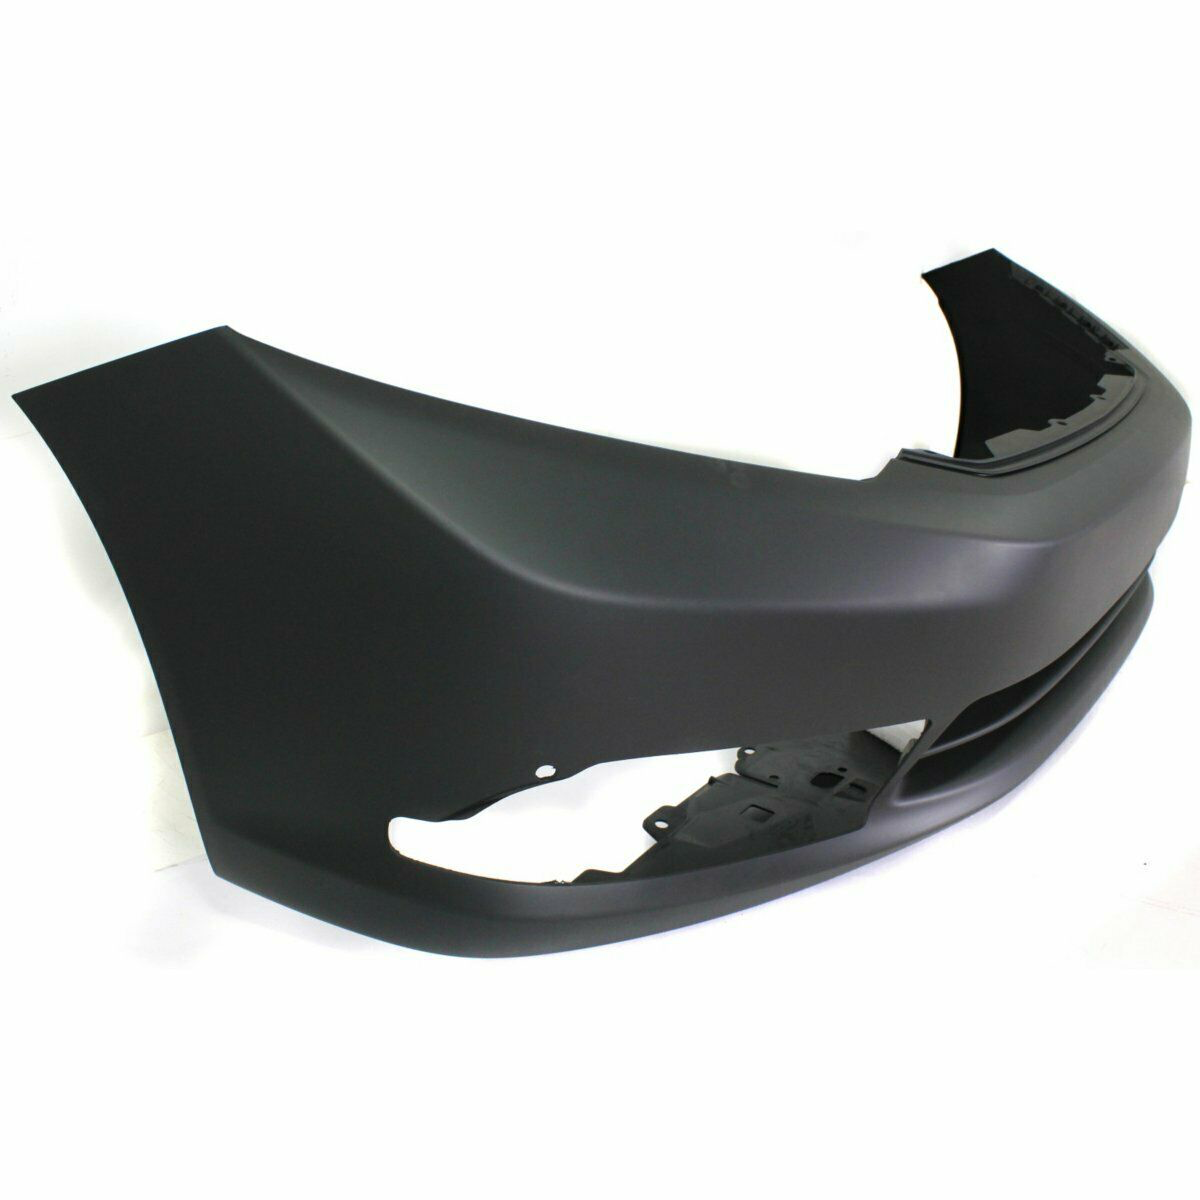 2012 Honda Civic Sedan Front (with Fog) Bumper Painted to Match